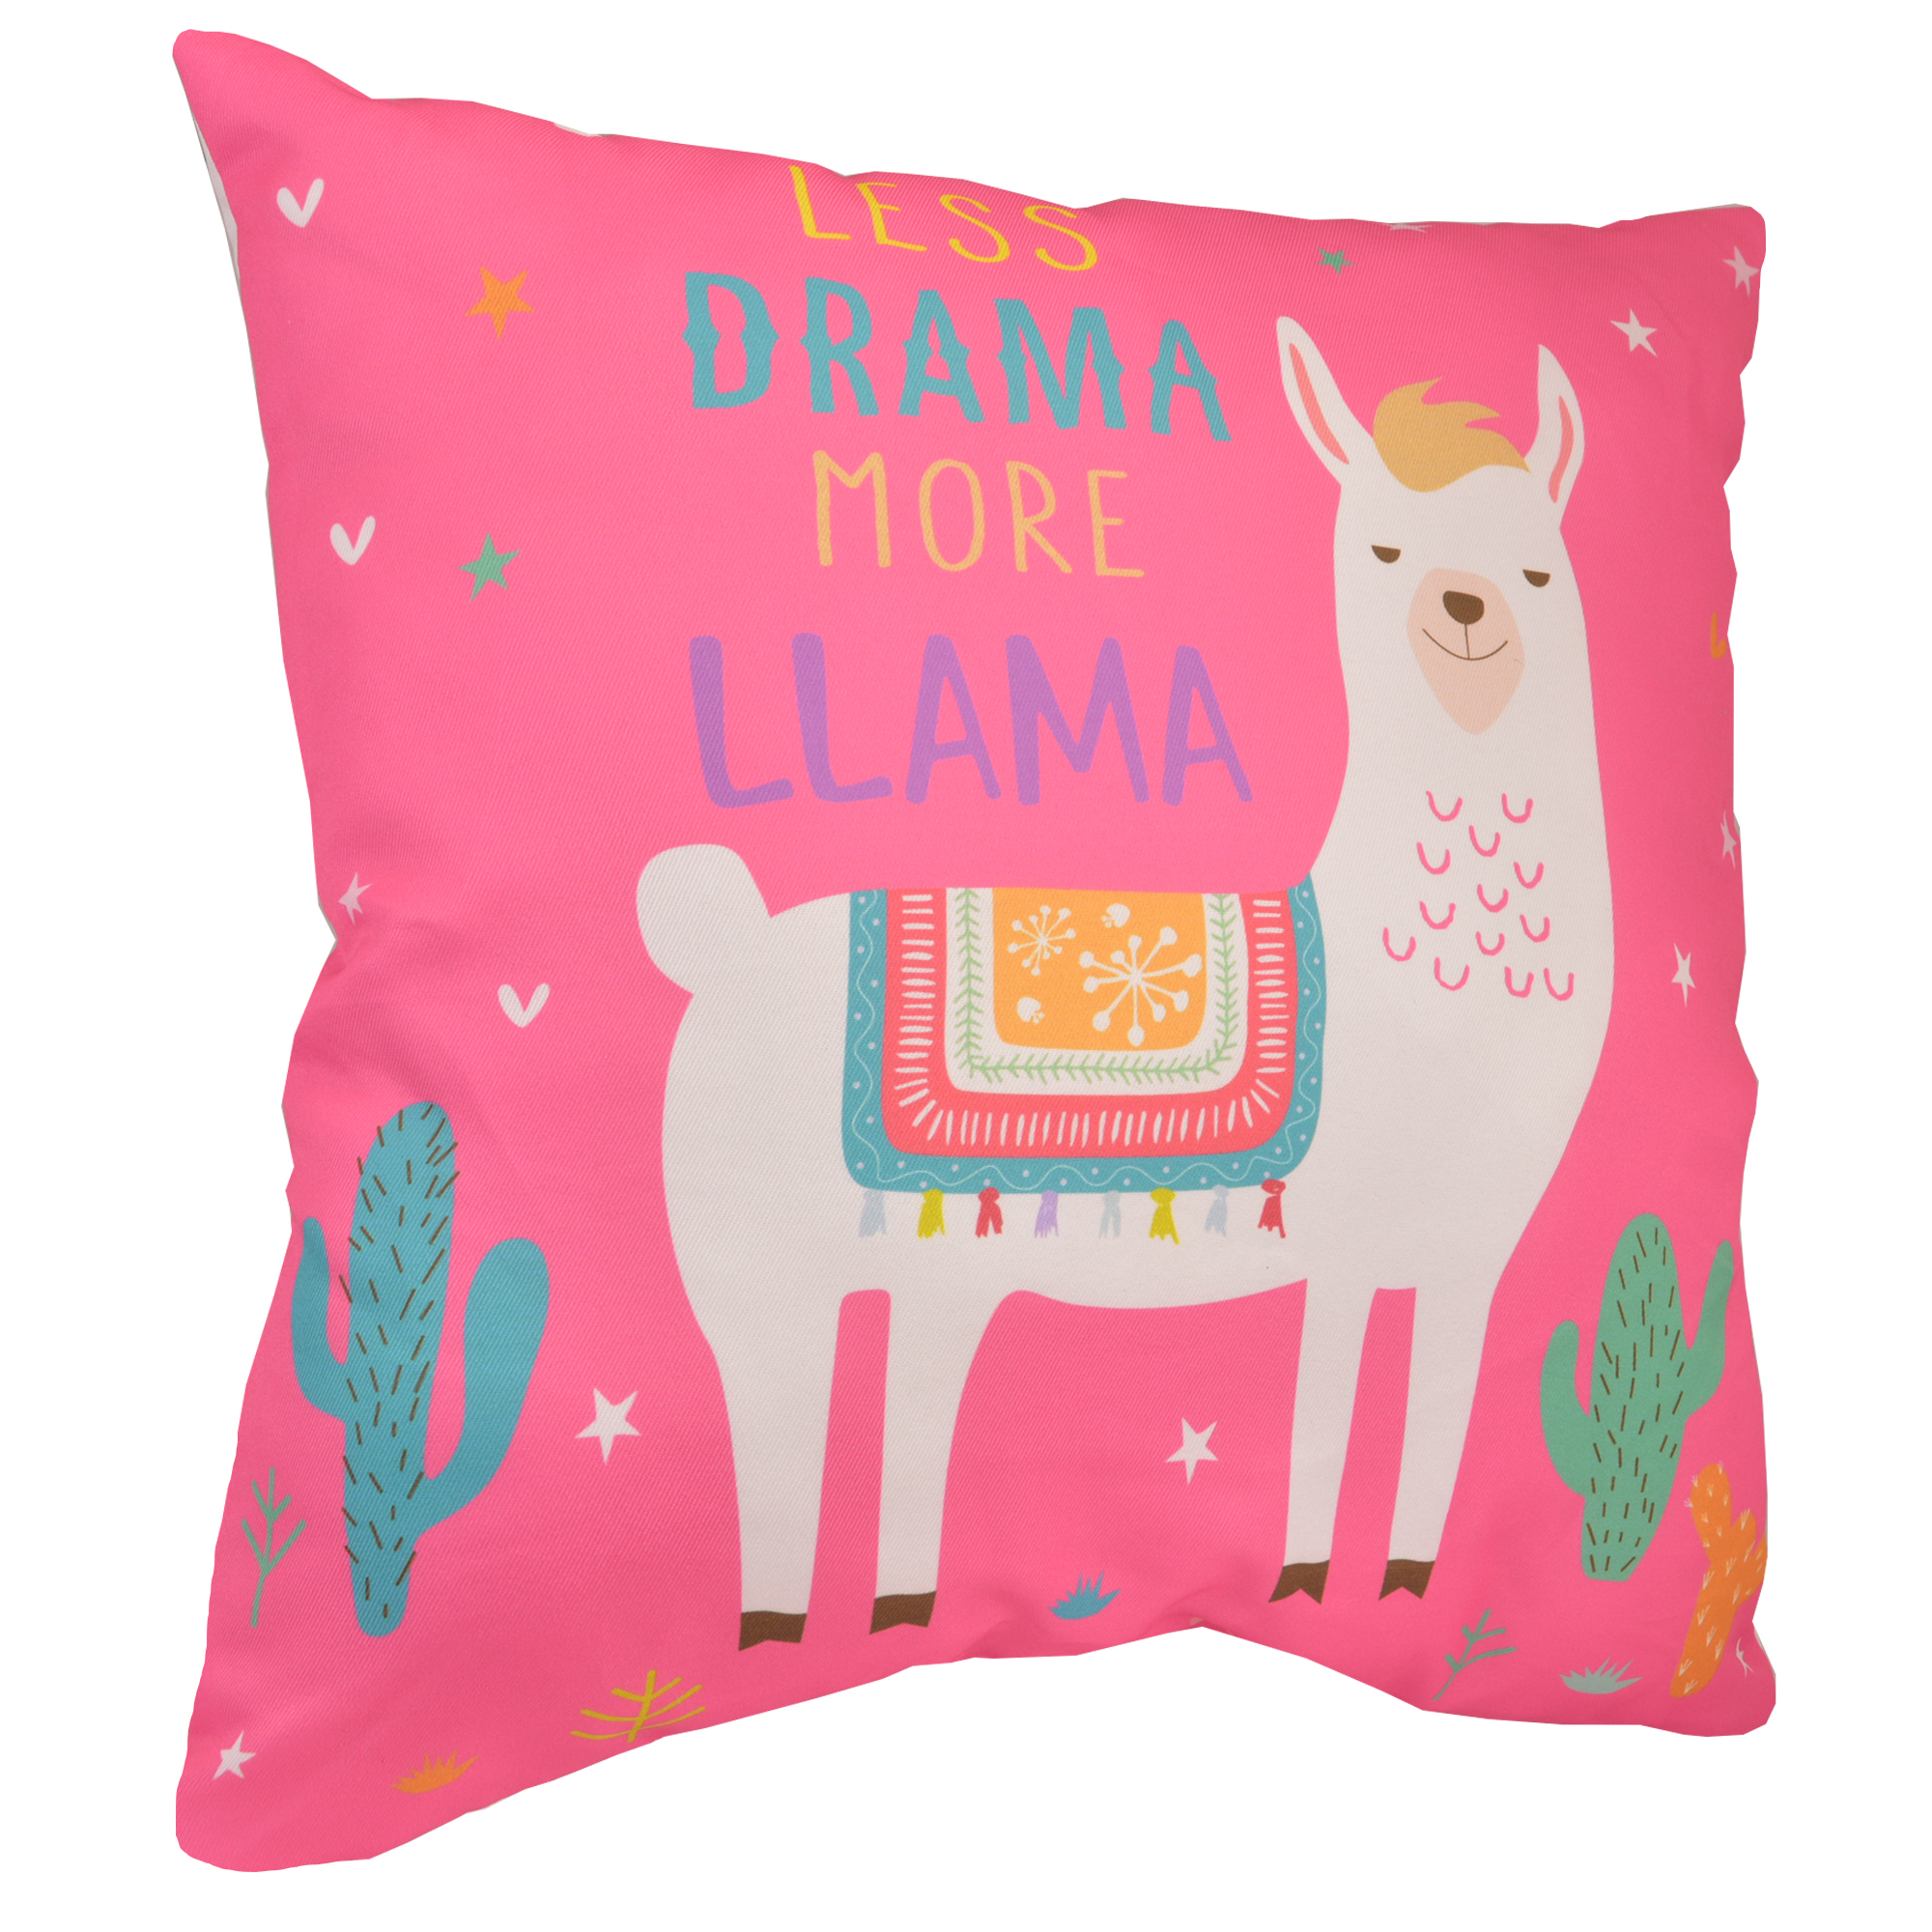 Less Drama More Llama Pink Cushion | Gifts | Love Kates